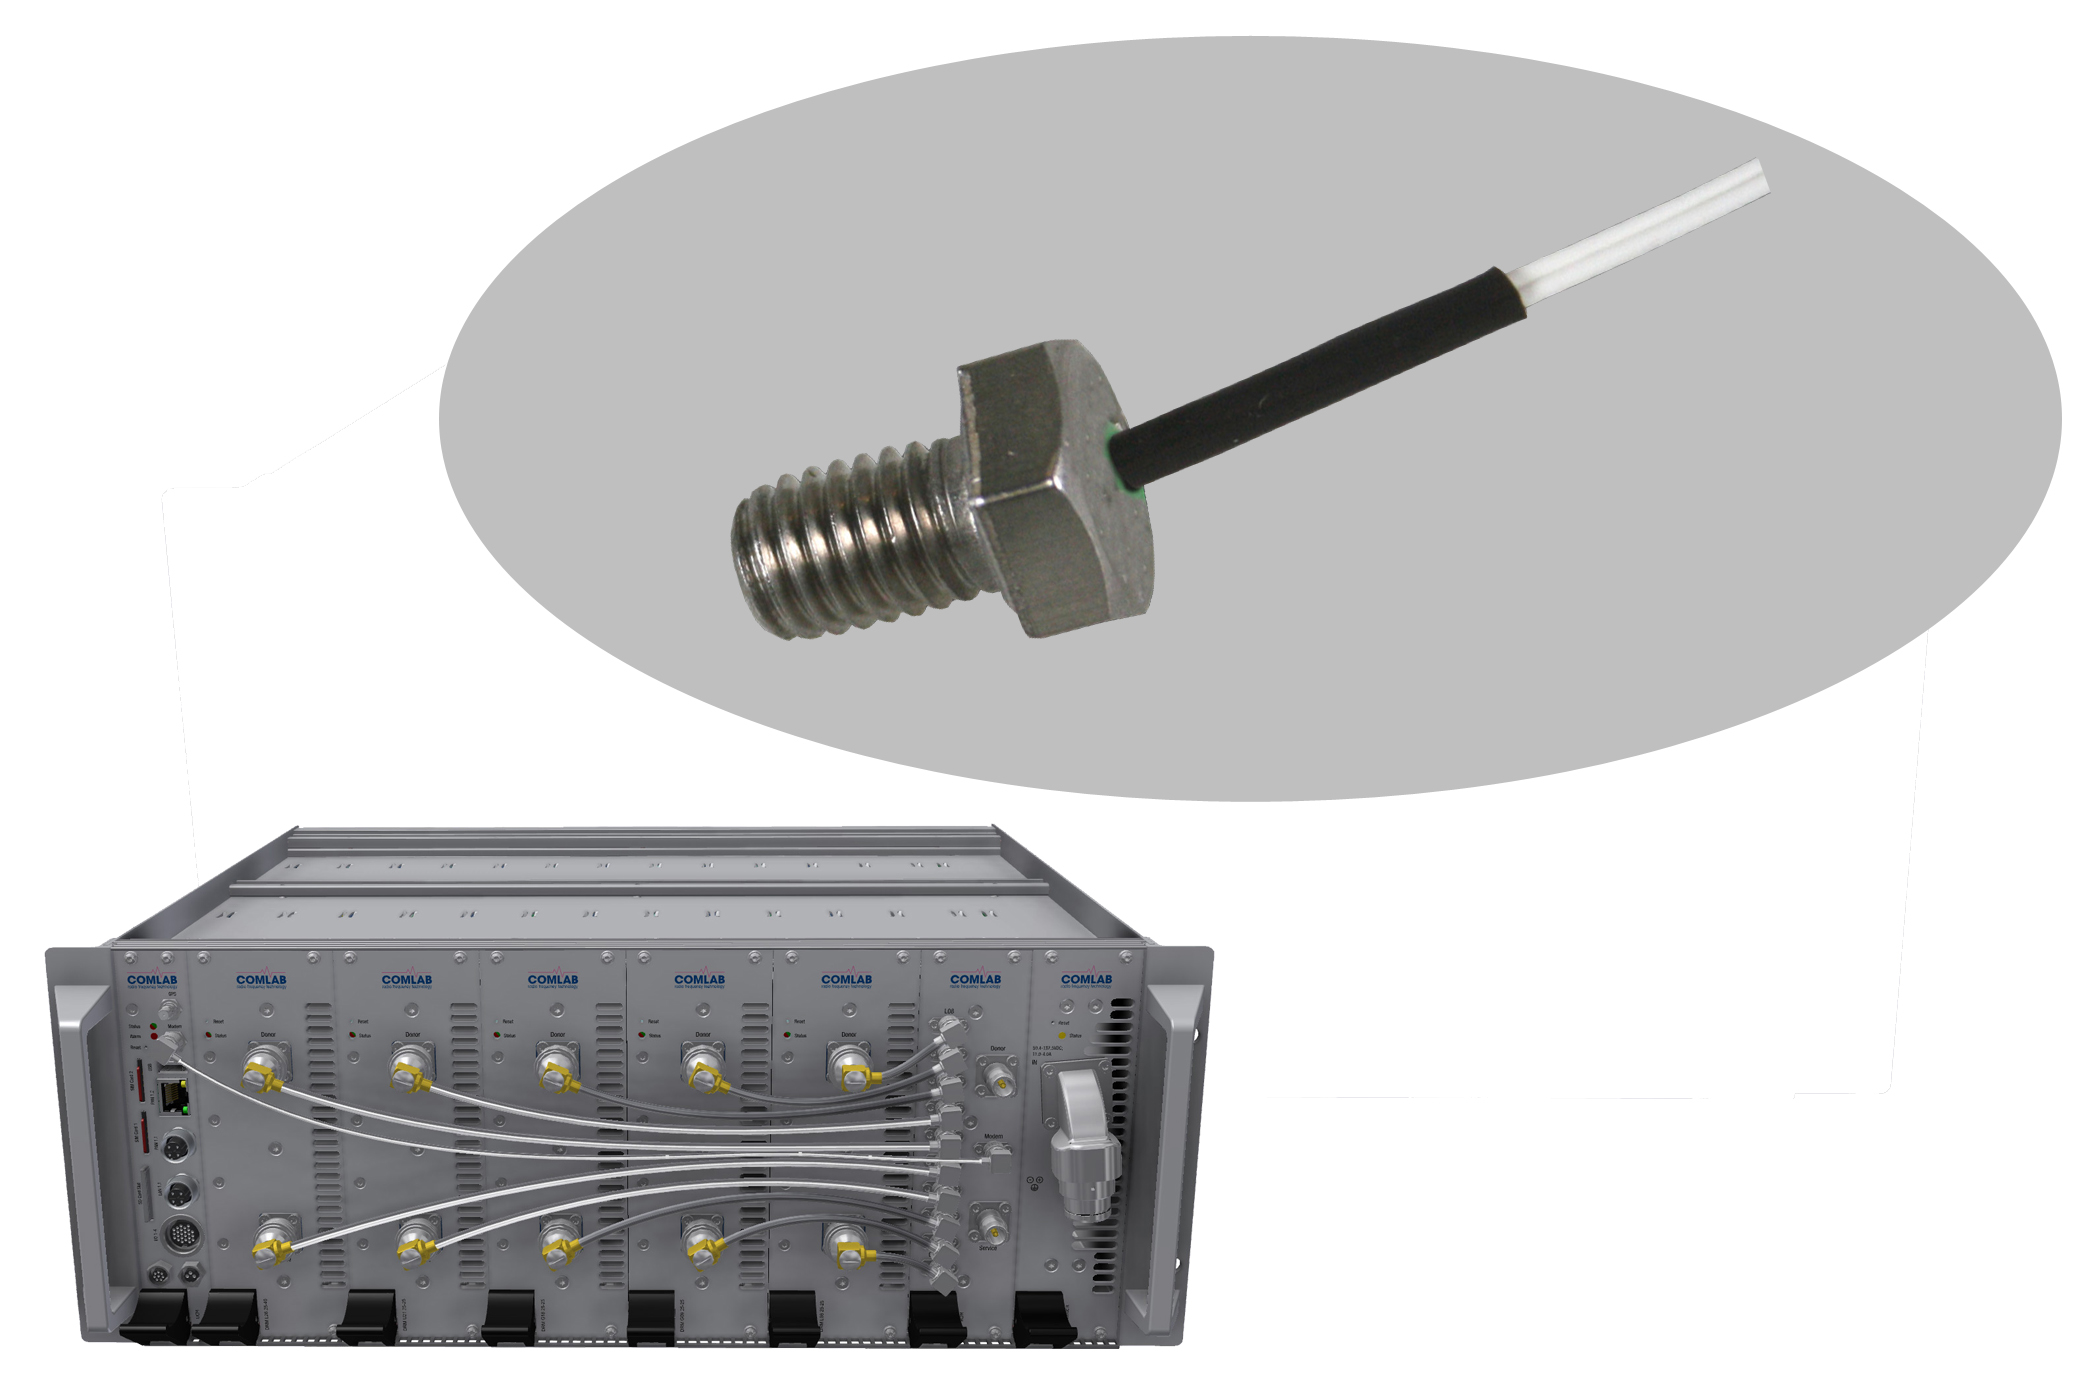 Hexagonal bolt temperature probes